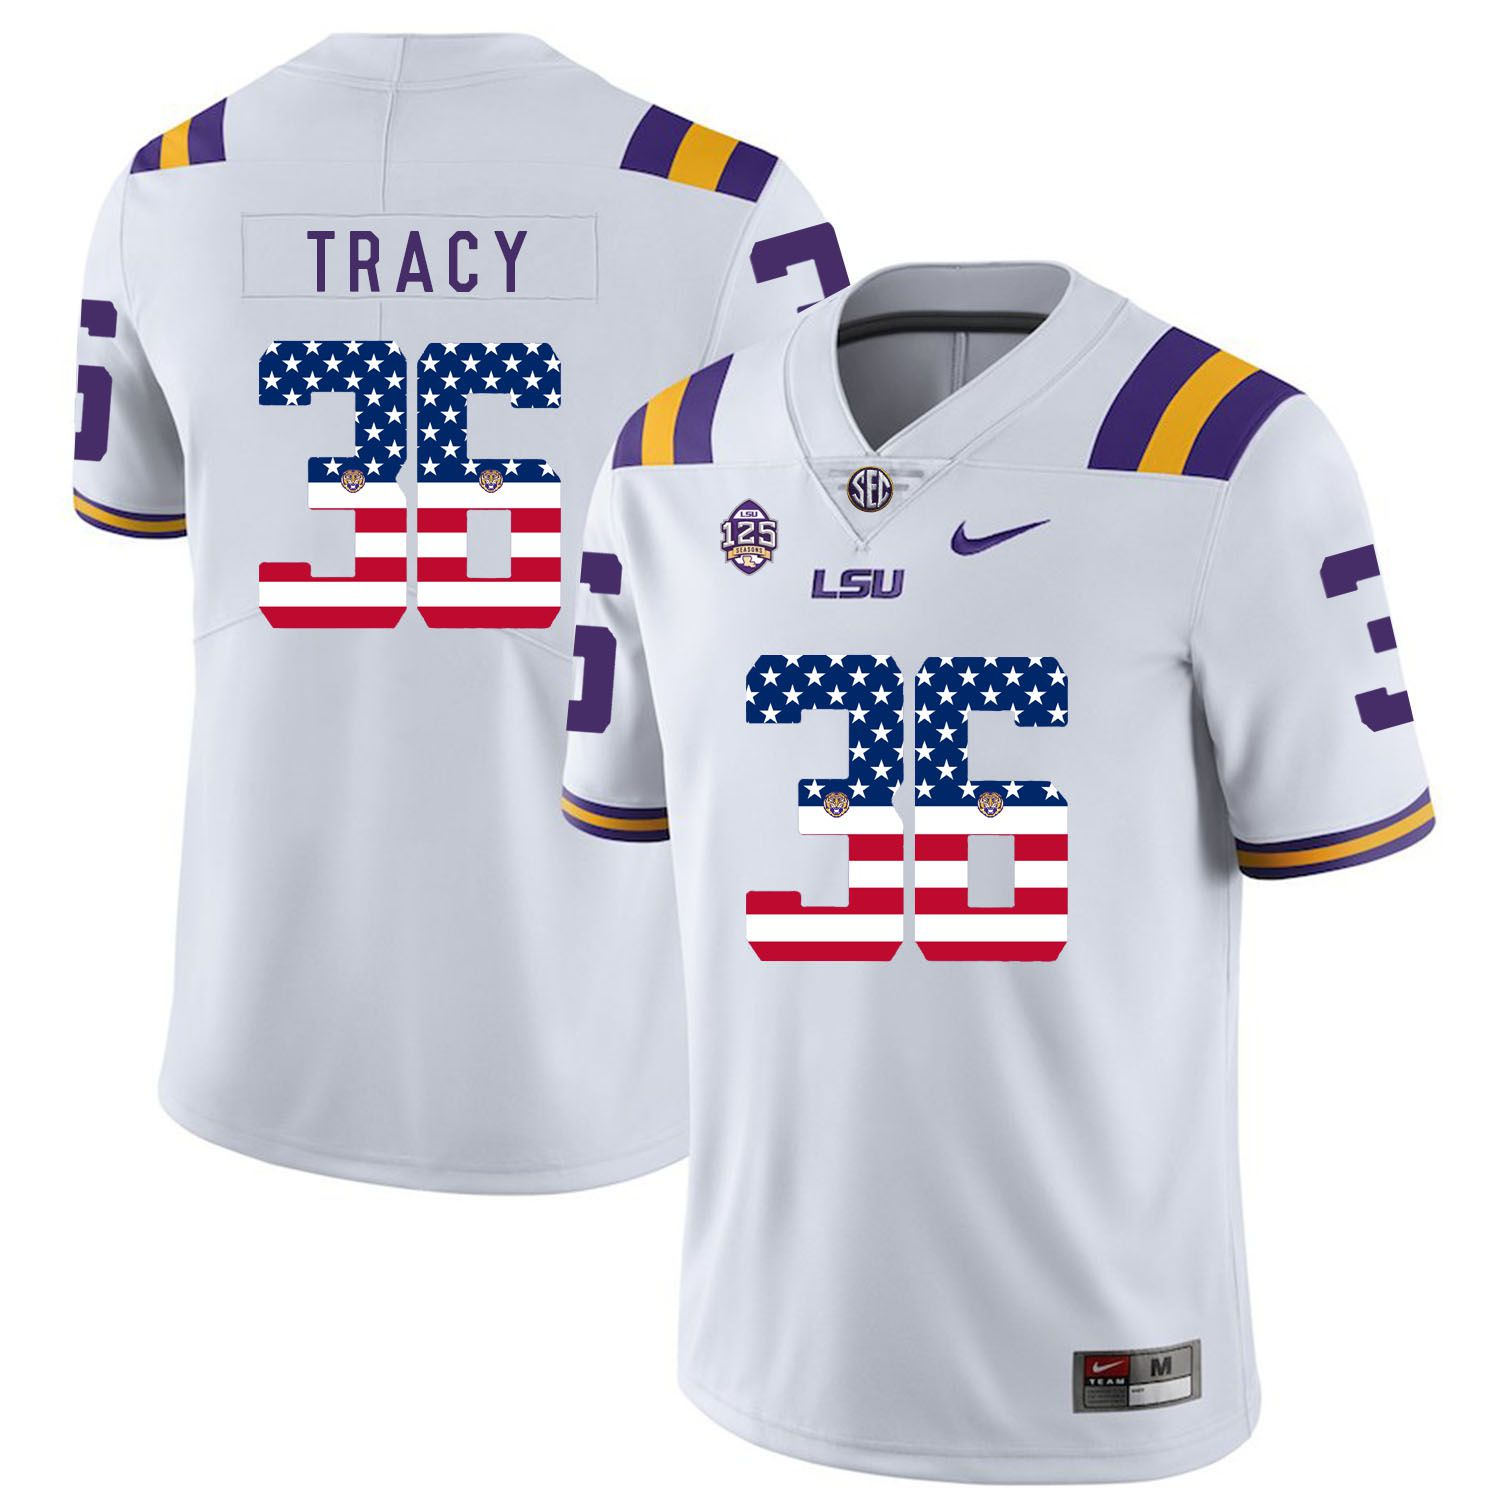 Men LSU Tigers 36 Tracy White Flag Customized NCAA Jerseys